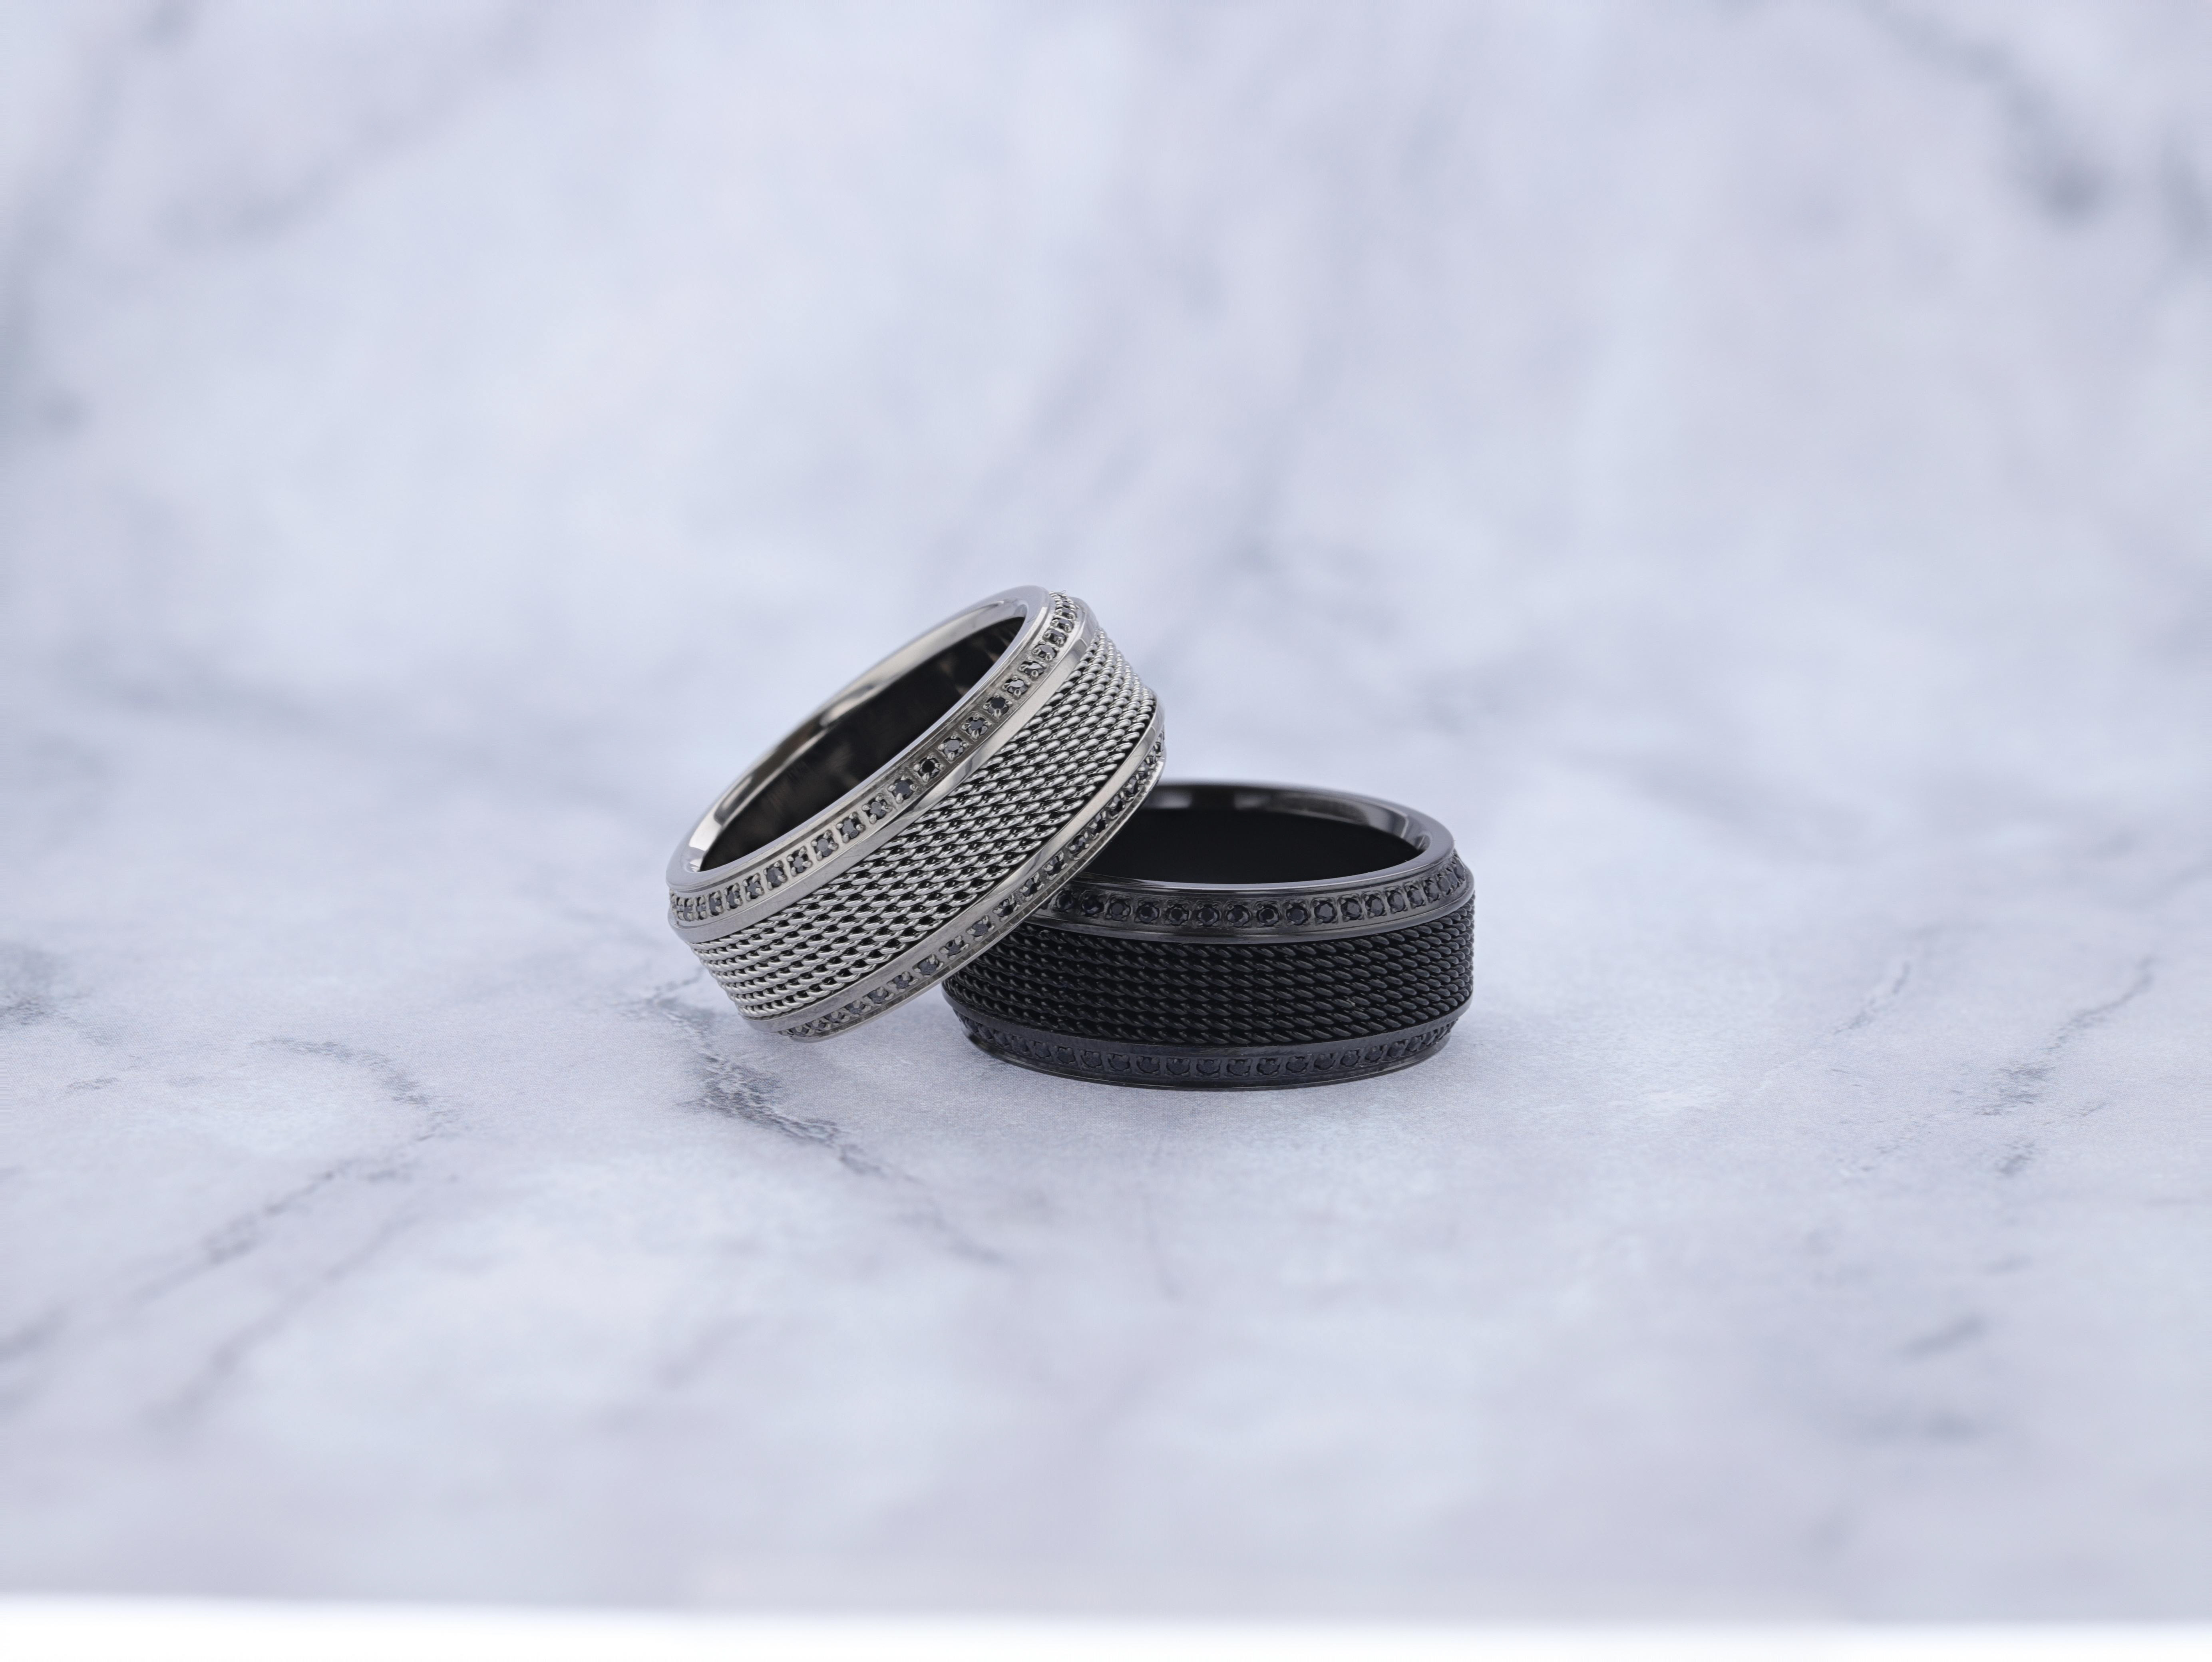 10 Things You Didn't Know About Titanium and Tungsten Wedding Bands